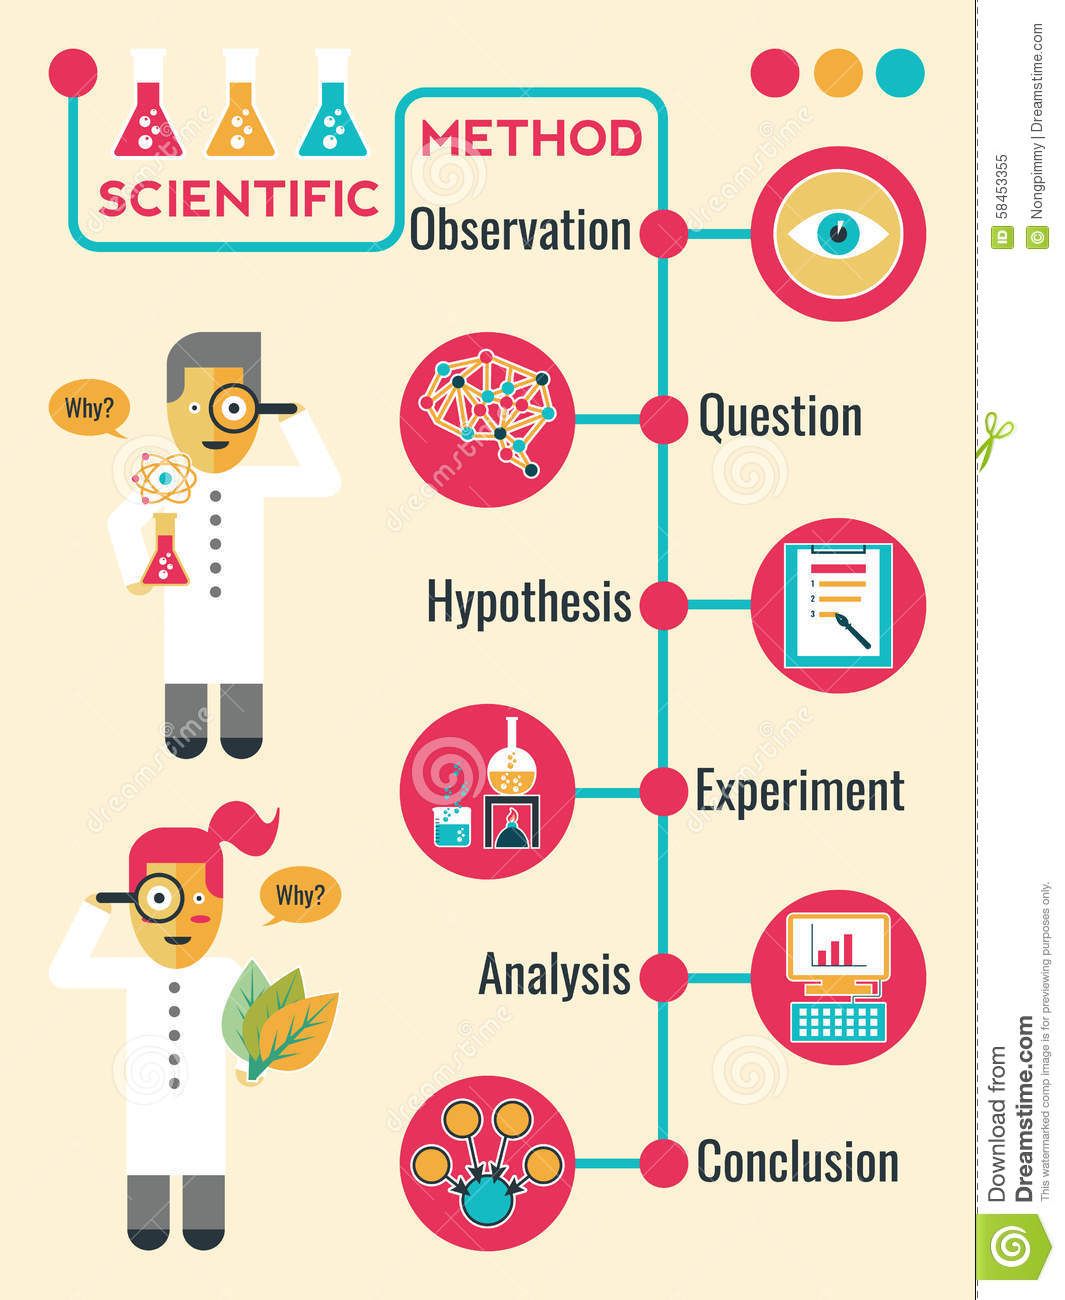 hypothesis research methodology The research hypothesis is central to all research endeavors, whether qualitative or quantitative, exploratory or explanatory at its most basic.